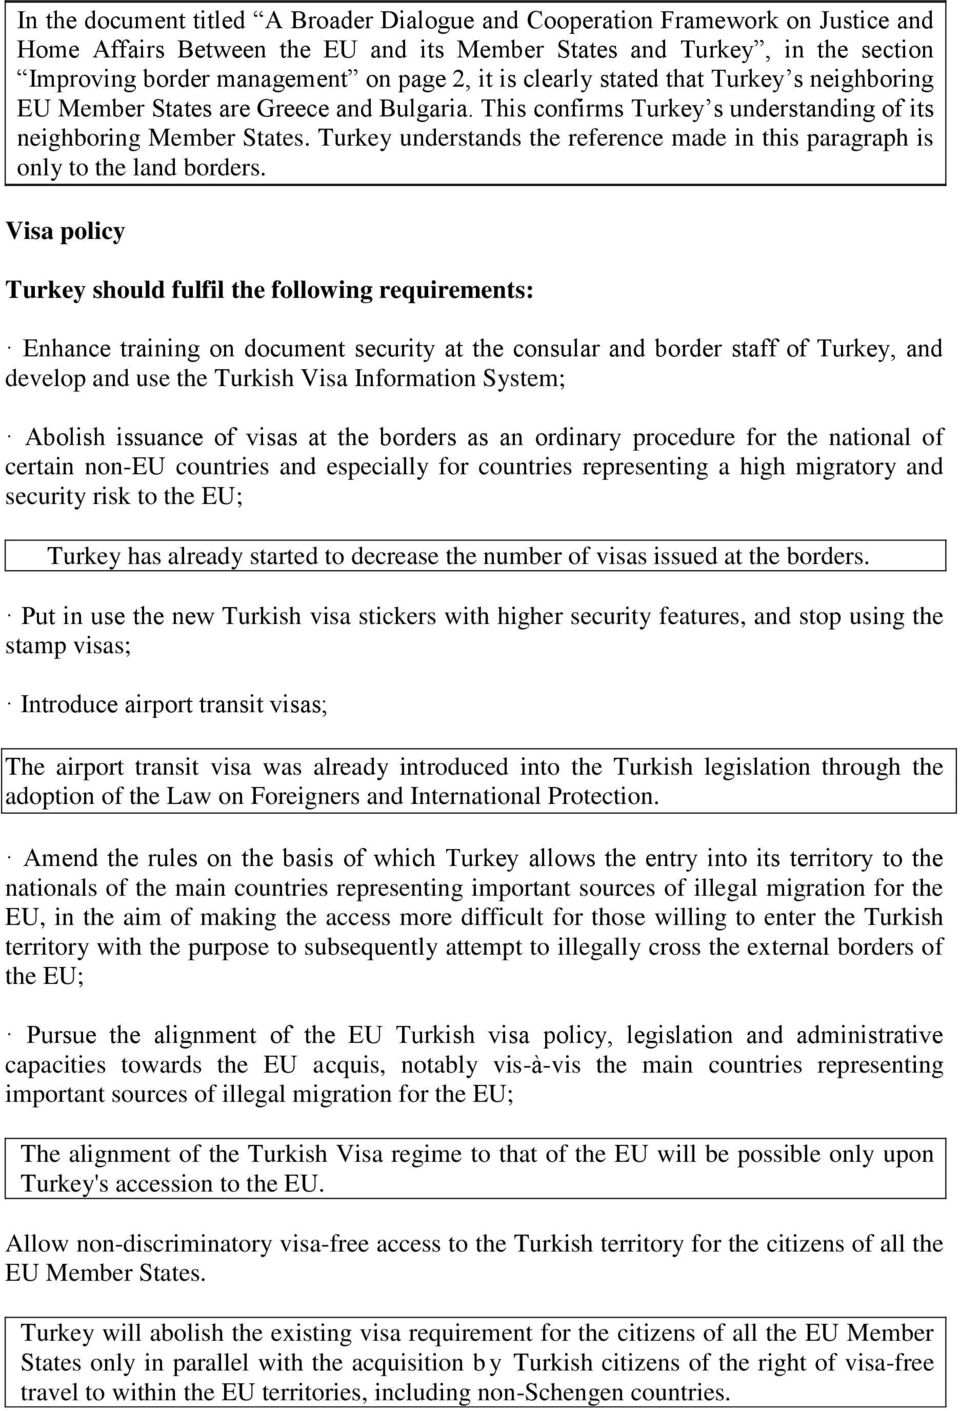 Turkey understands the reference made in this paragraph is only to the land borders.